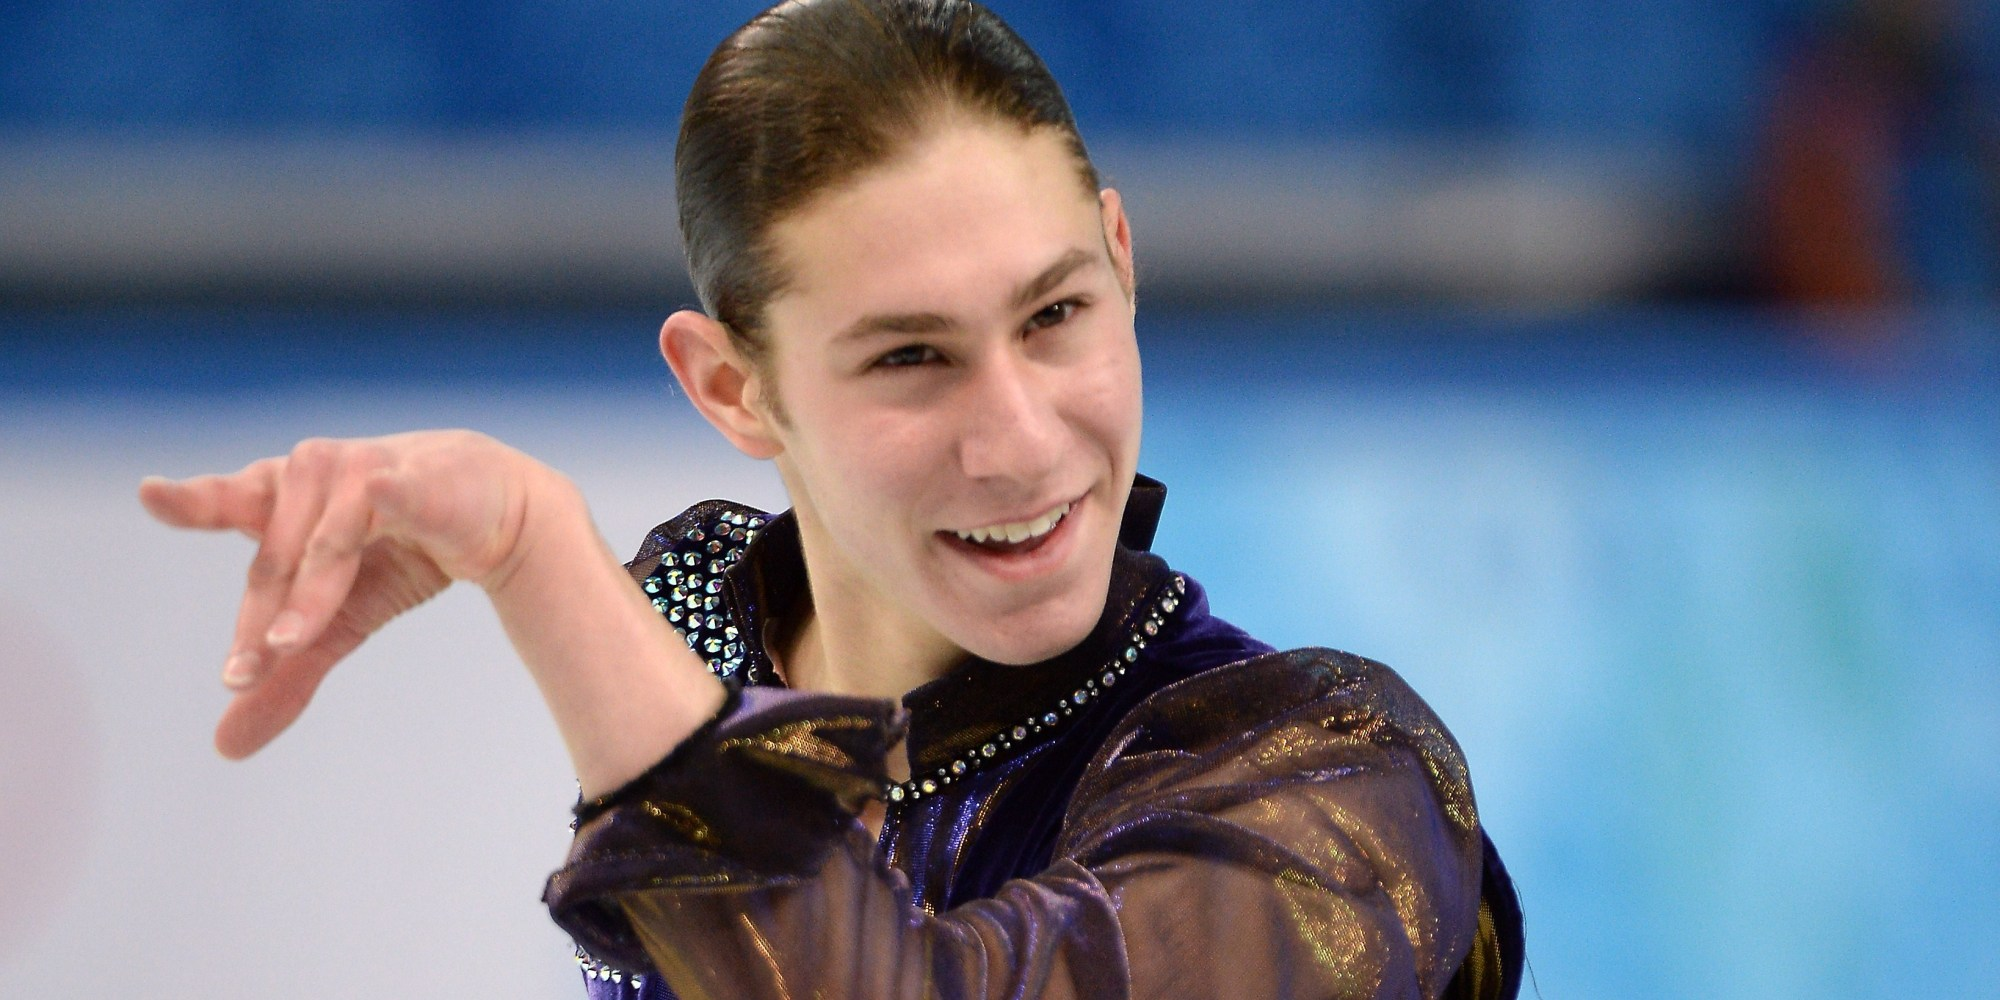 Jason Brown Skated To Prince S The Question Of U And Is